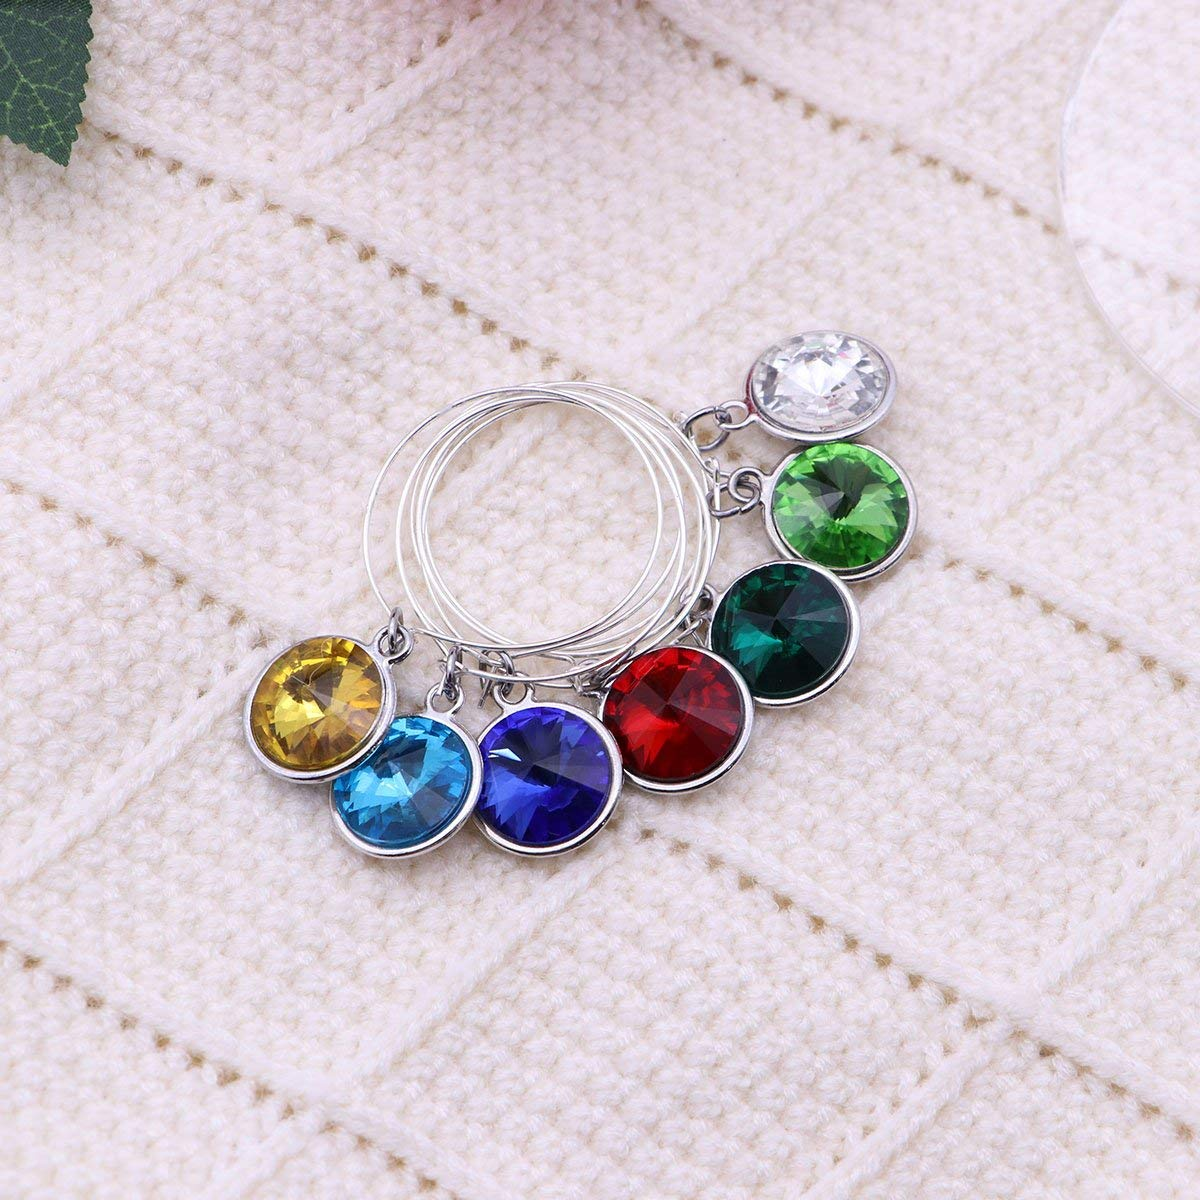 LUOEM 5pcs Birthstone Wine Glass Charms with 25mm Rings Wire Hoops Drink Markers Party Supplies Earrings (Gold)